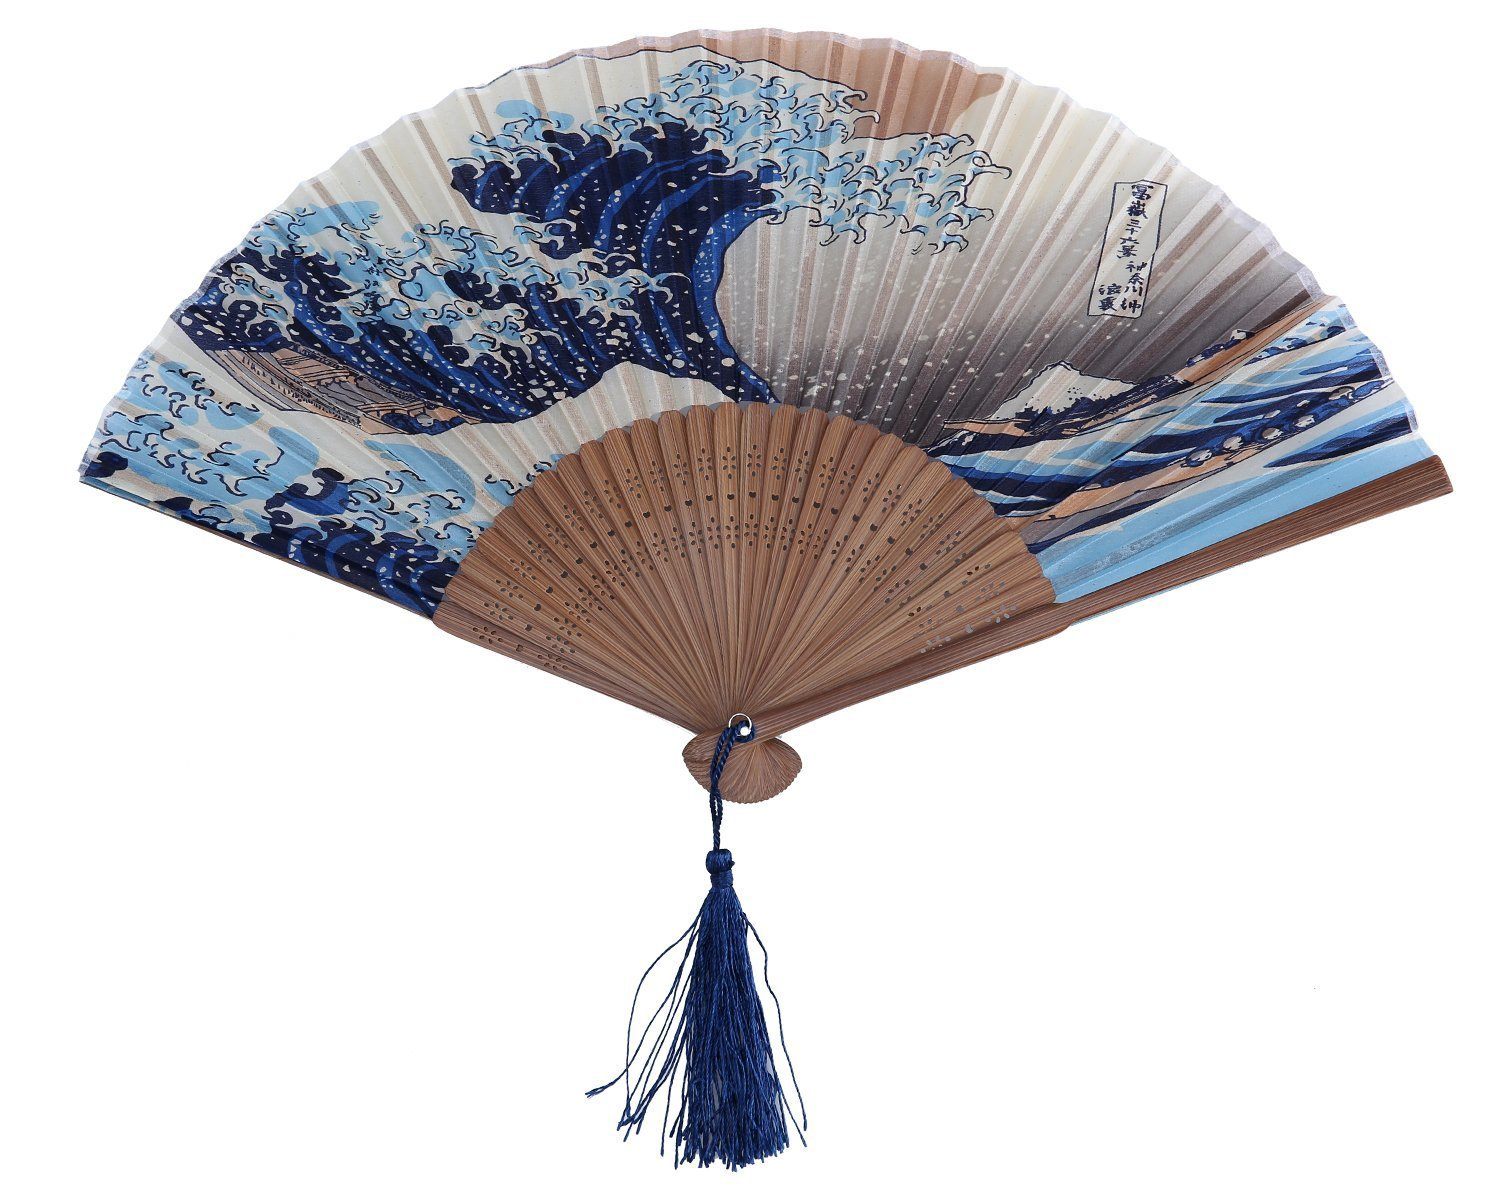 Da.Wa Folding Hand Fan Portable Chinese Fan Wave Pattern Handheld Fans for Home Decoration